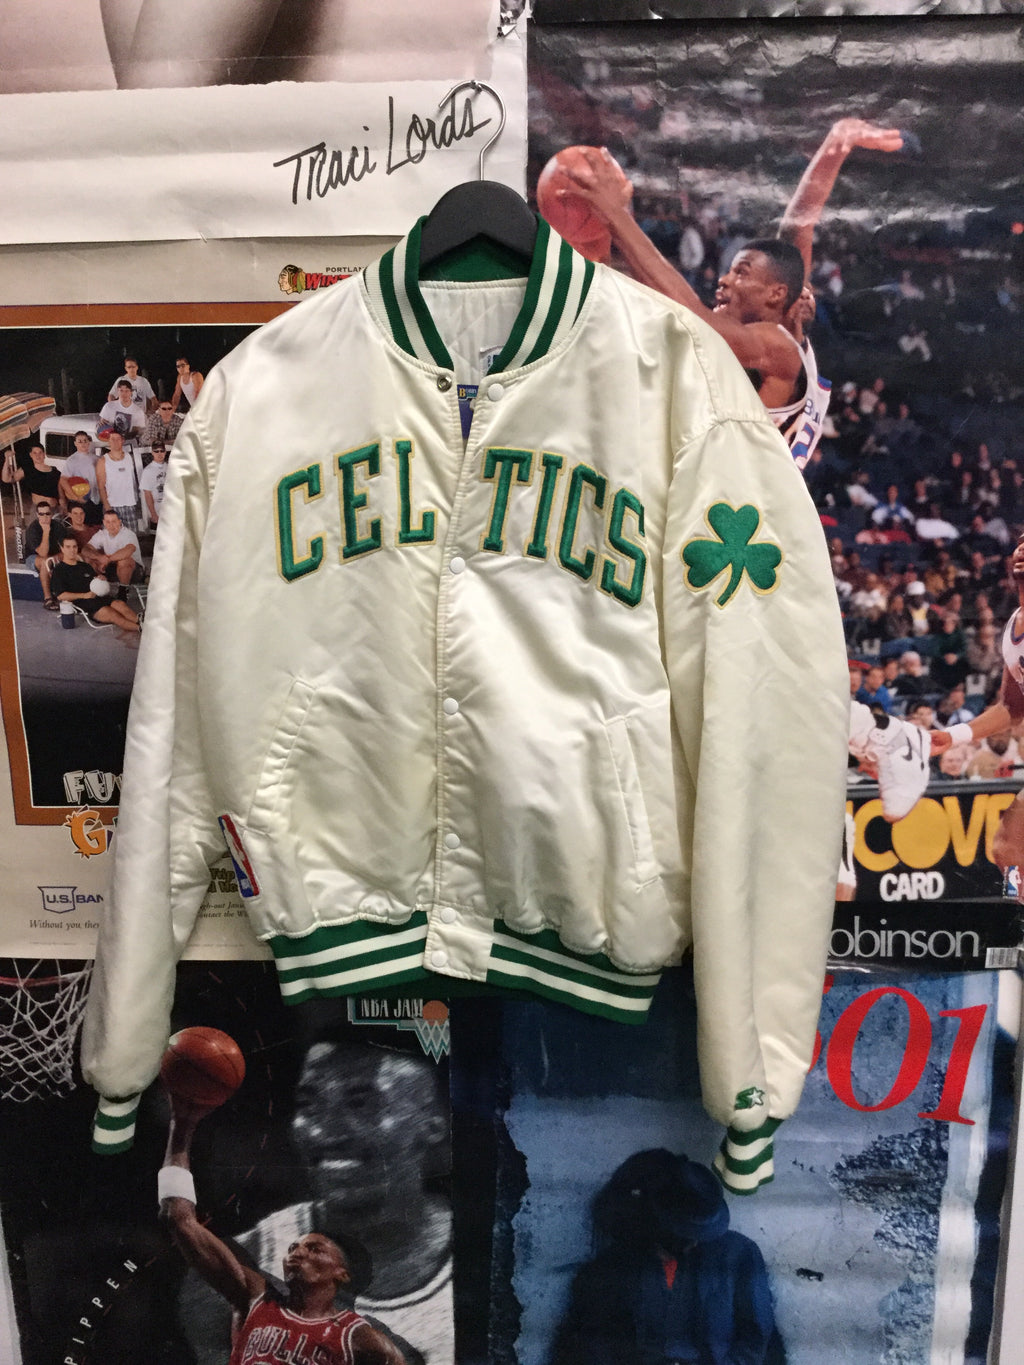 Starter Boston Celtics Satin Jacket XL - Decades of dope